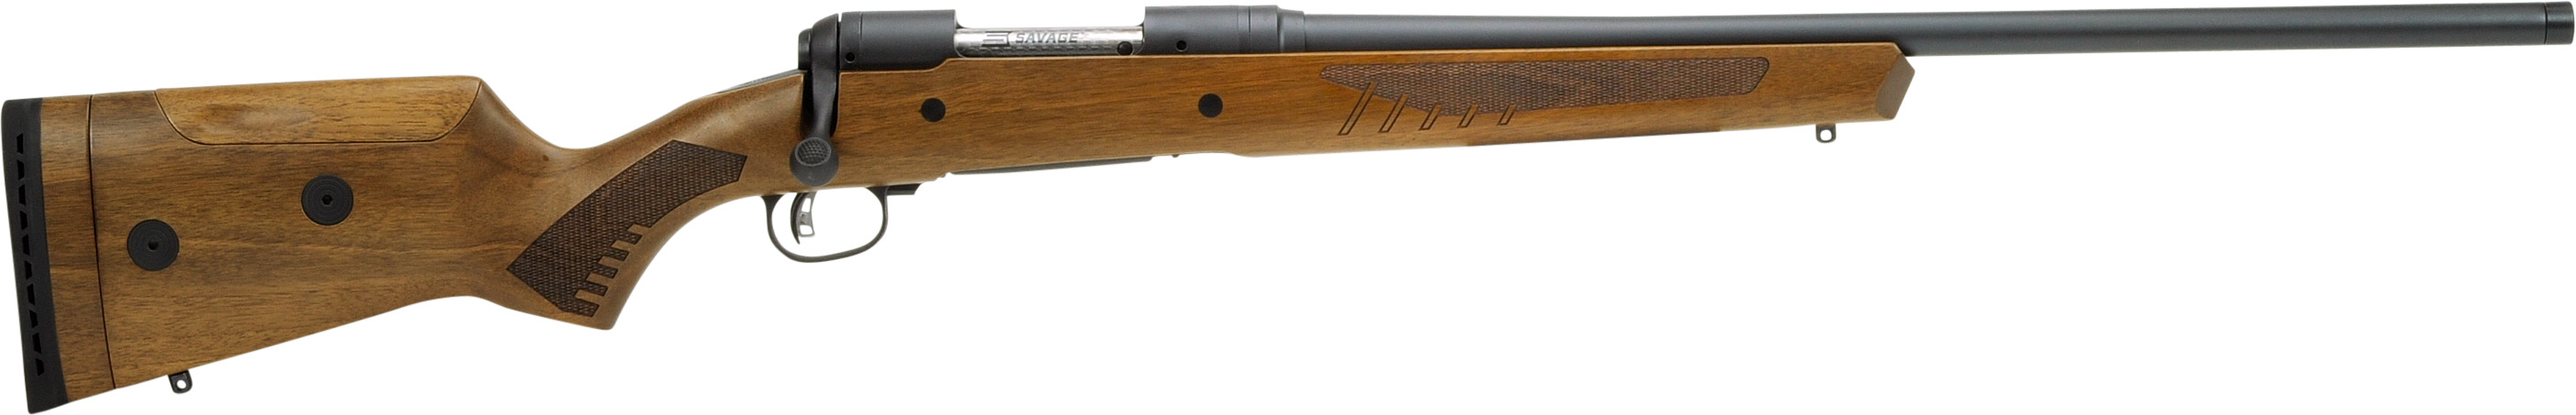 Savage Arms 110 Classic 308 Win